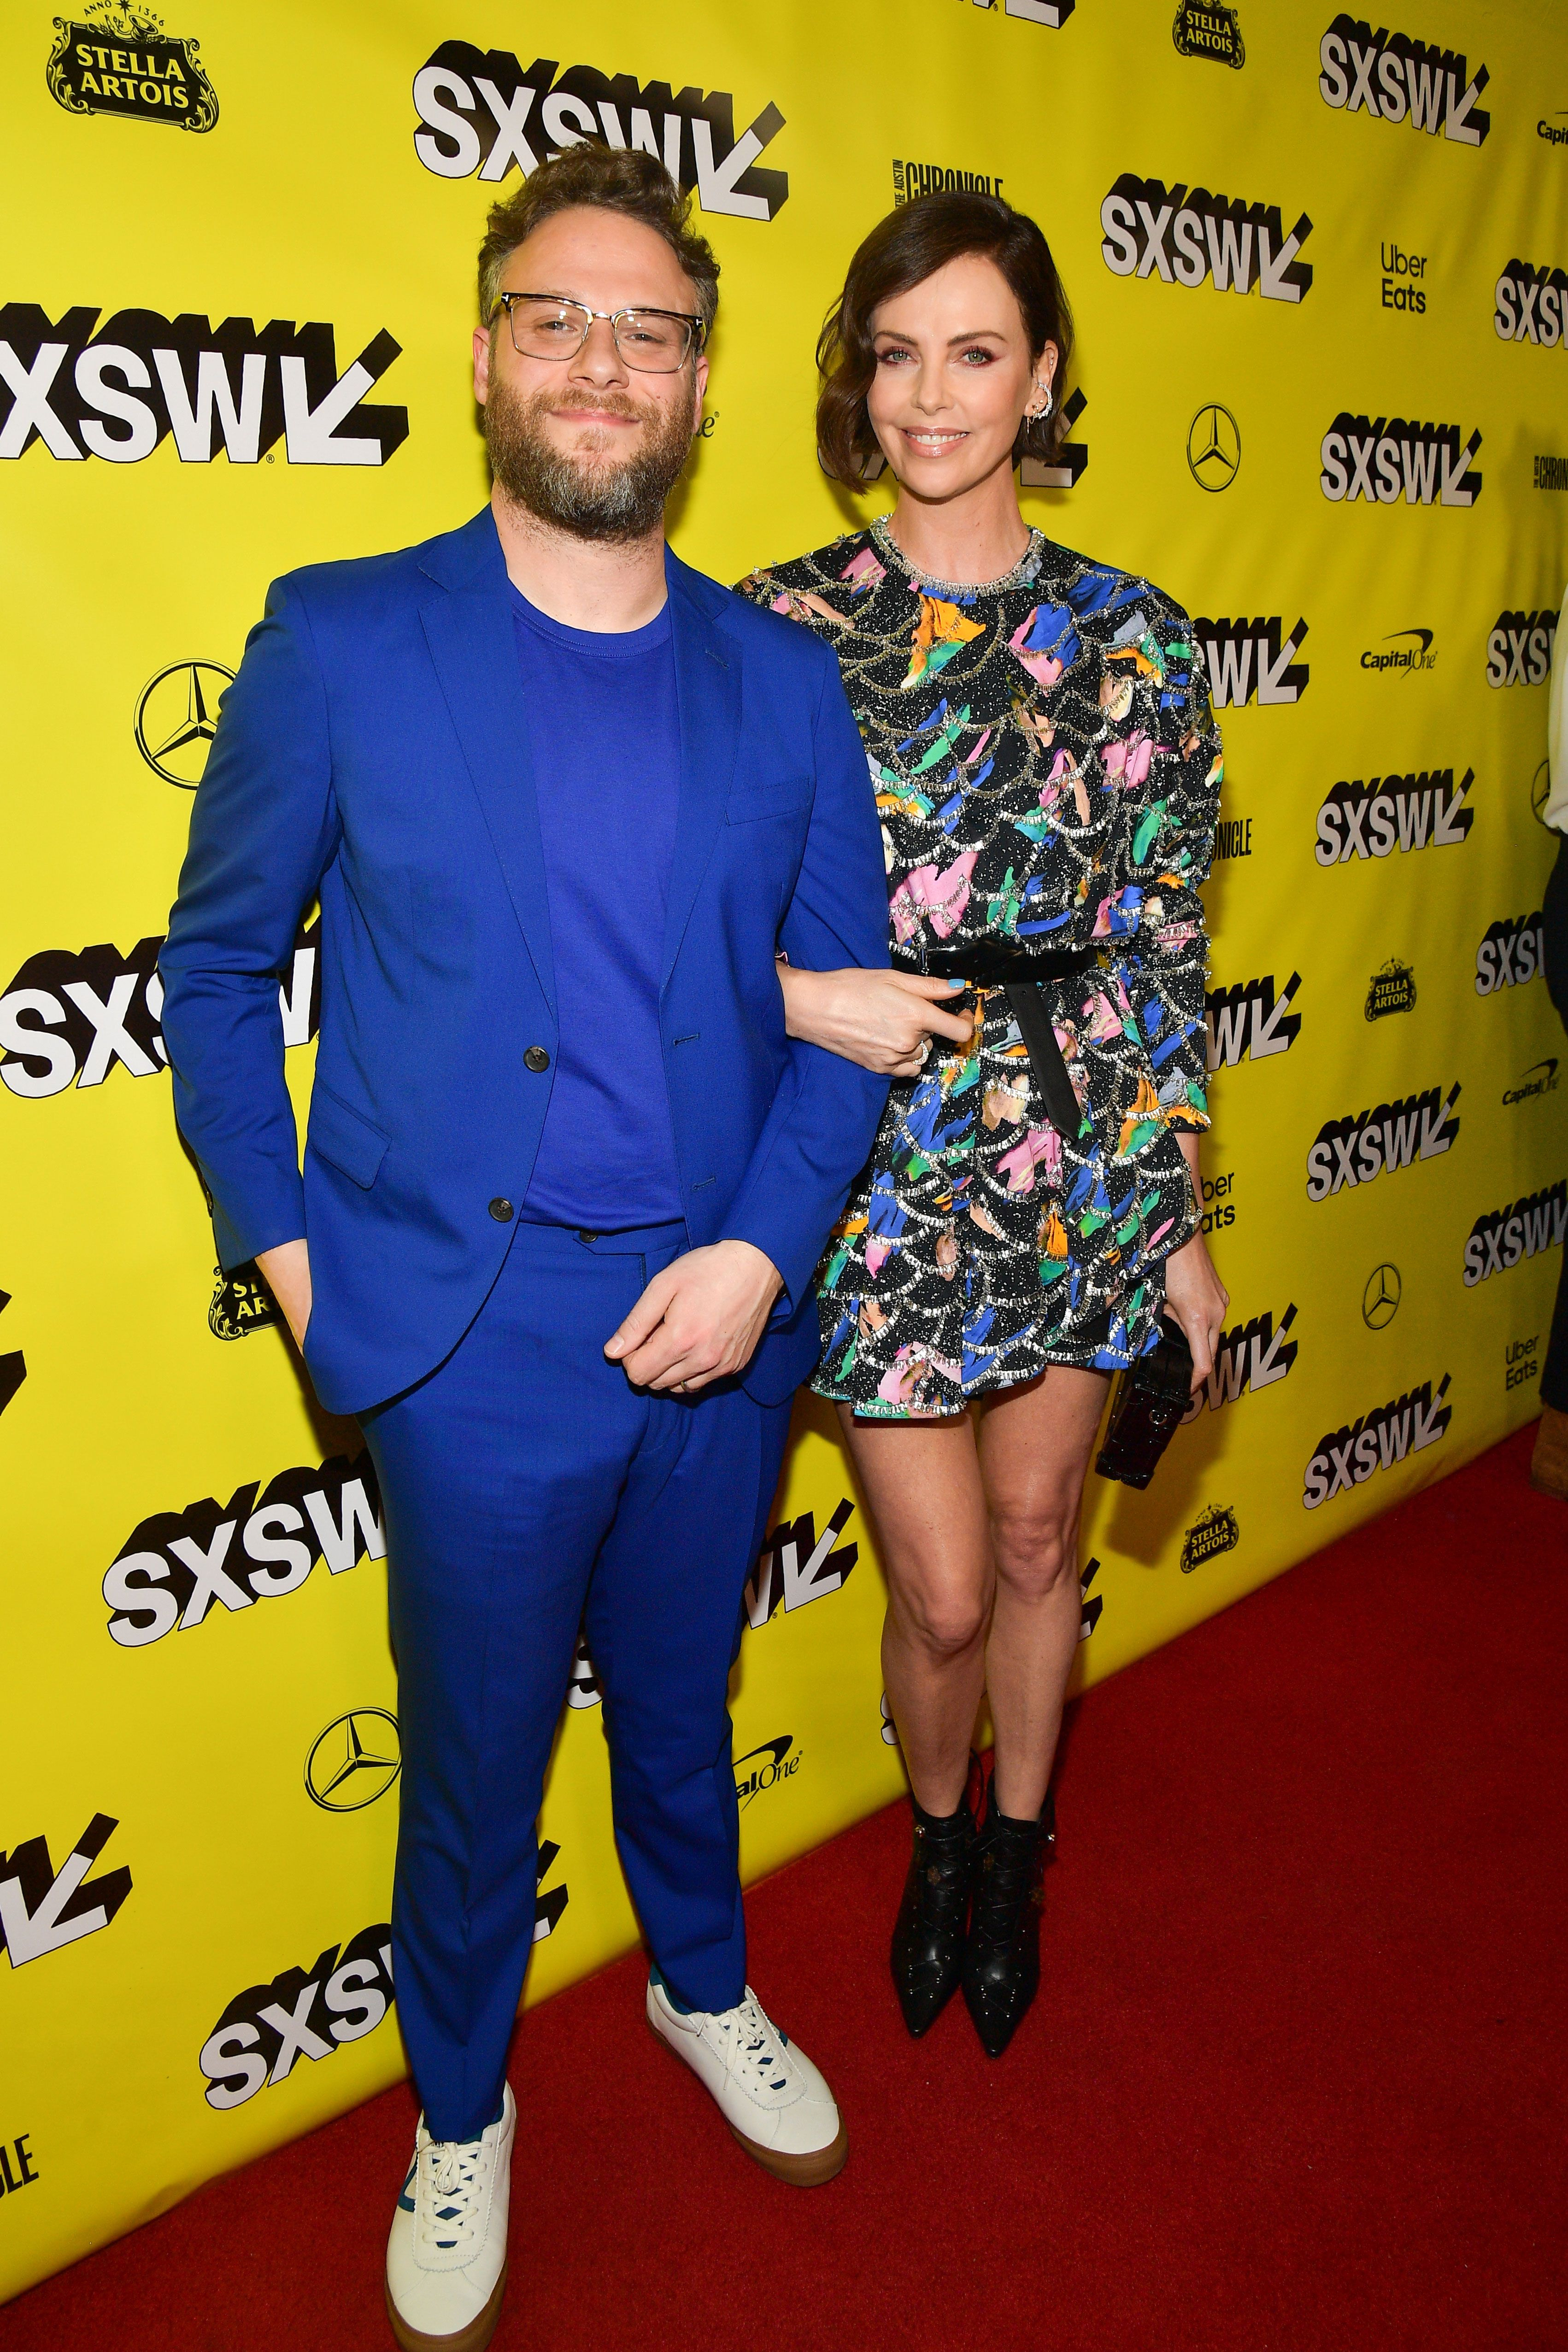 Seth Rogen and Charlize Theron at the South by Southwest premiere of Long Shot on March 9, 2019 in Austin, Texas.